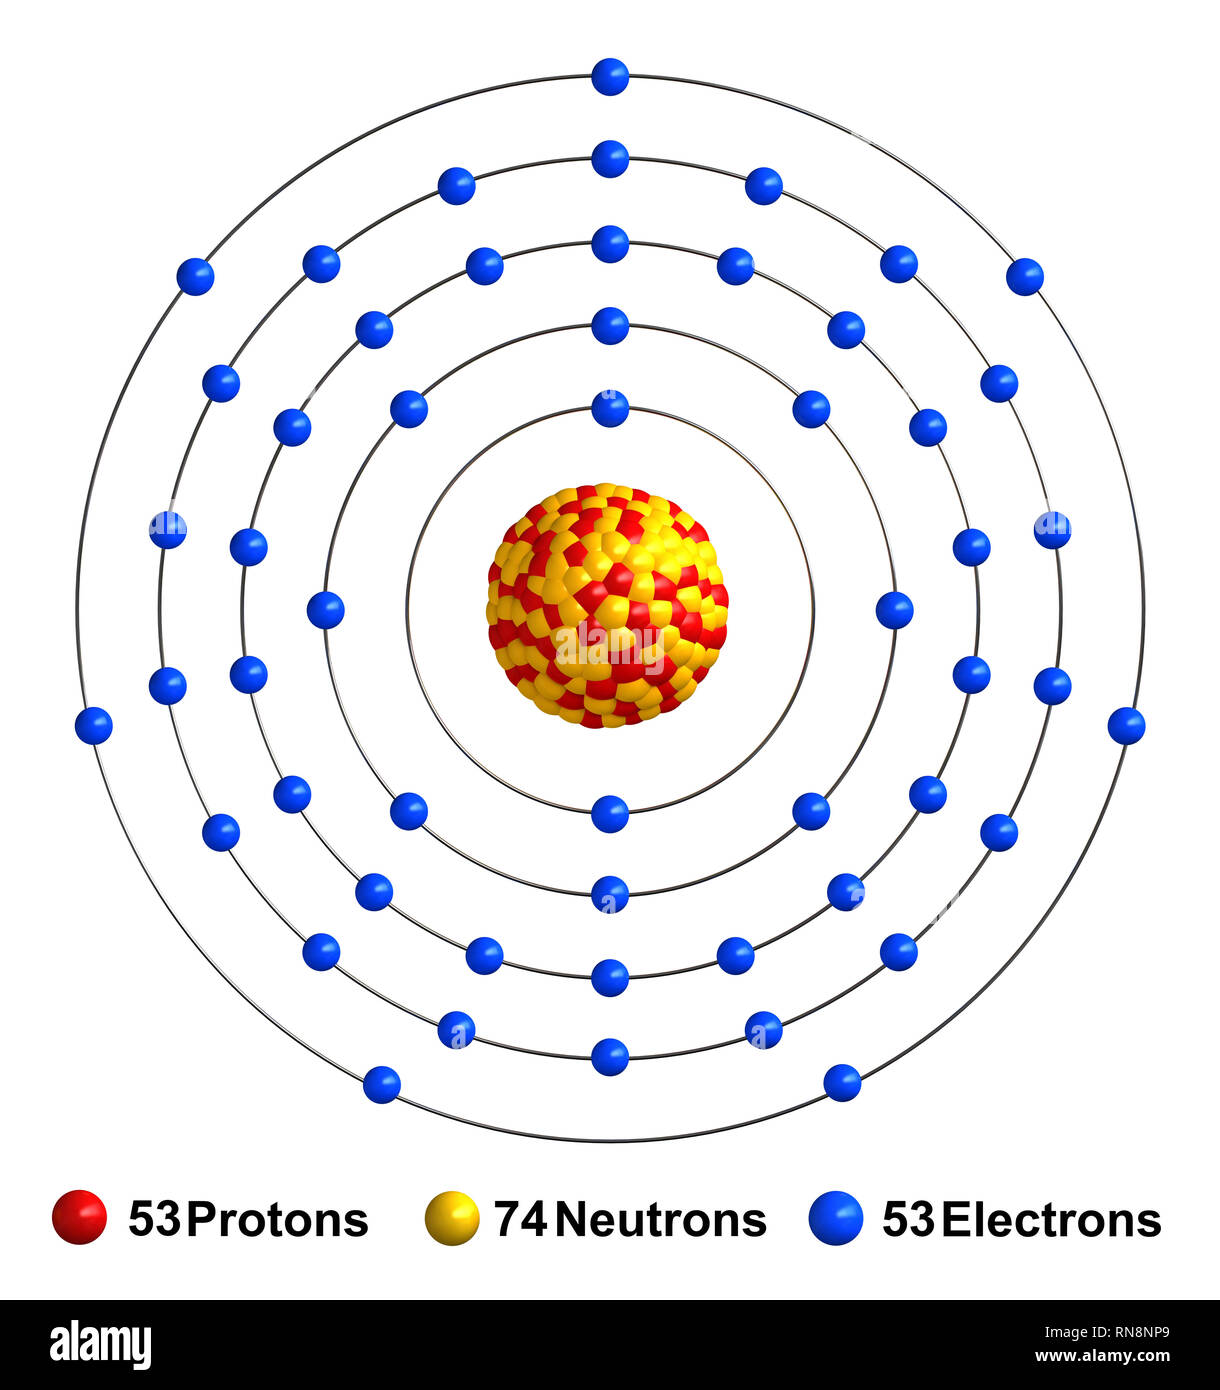 hight resolution of 3d render of atom structure of iodine isolated over white background protons are represented as red spheres neutron as yellow spheres electrons as b